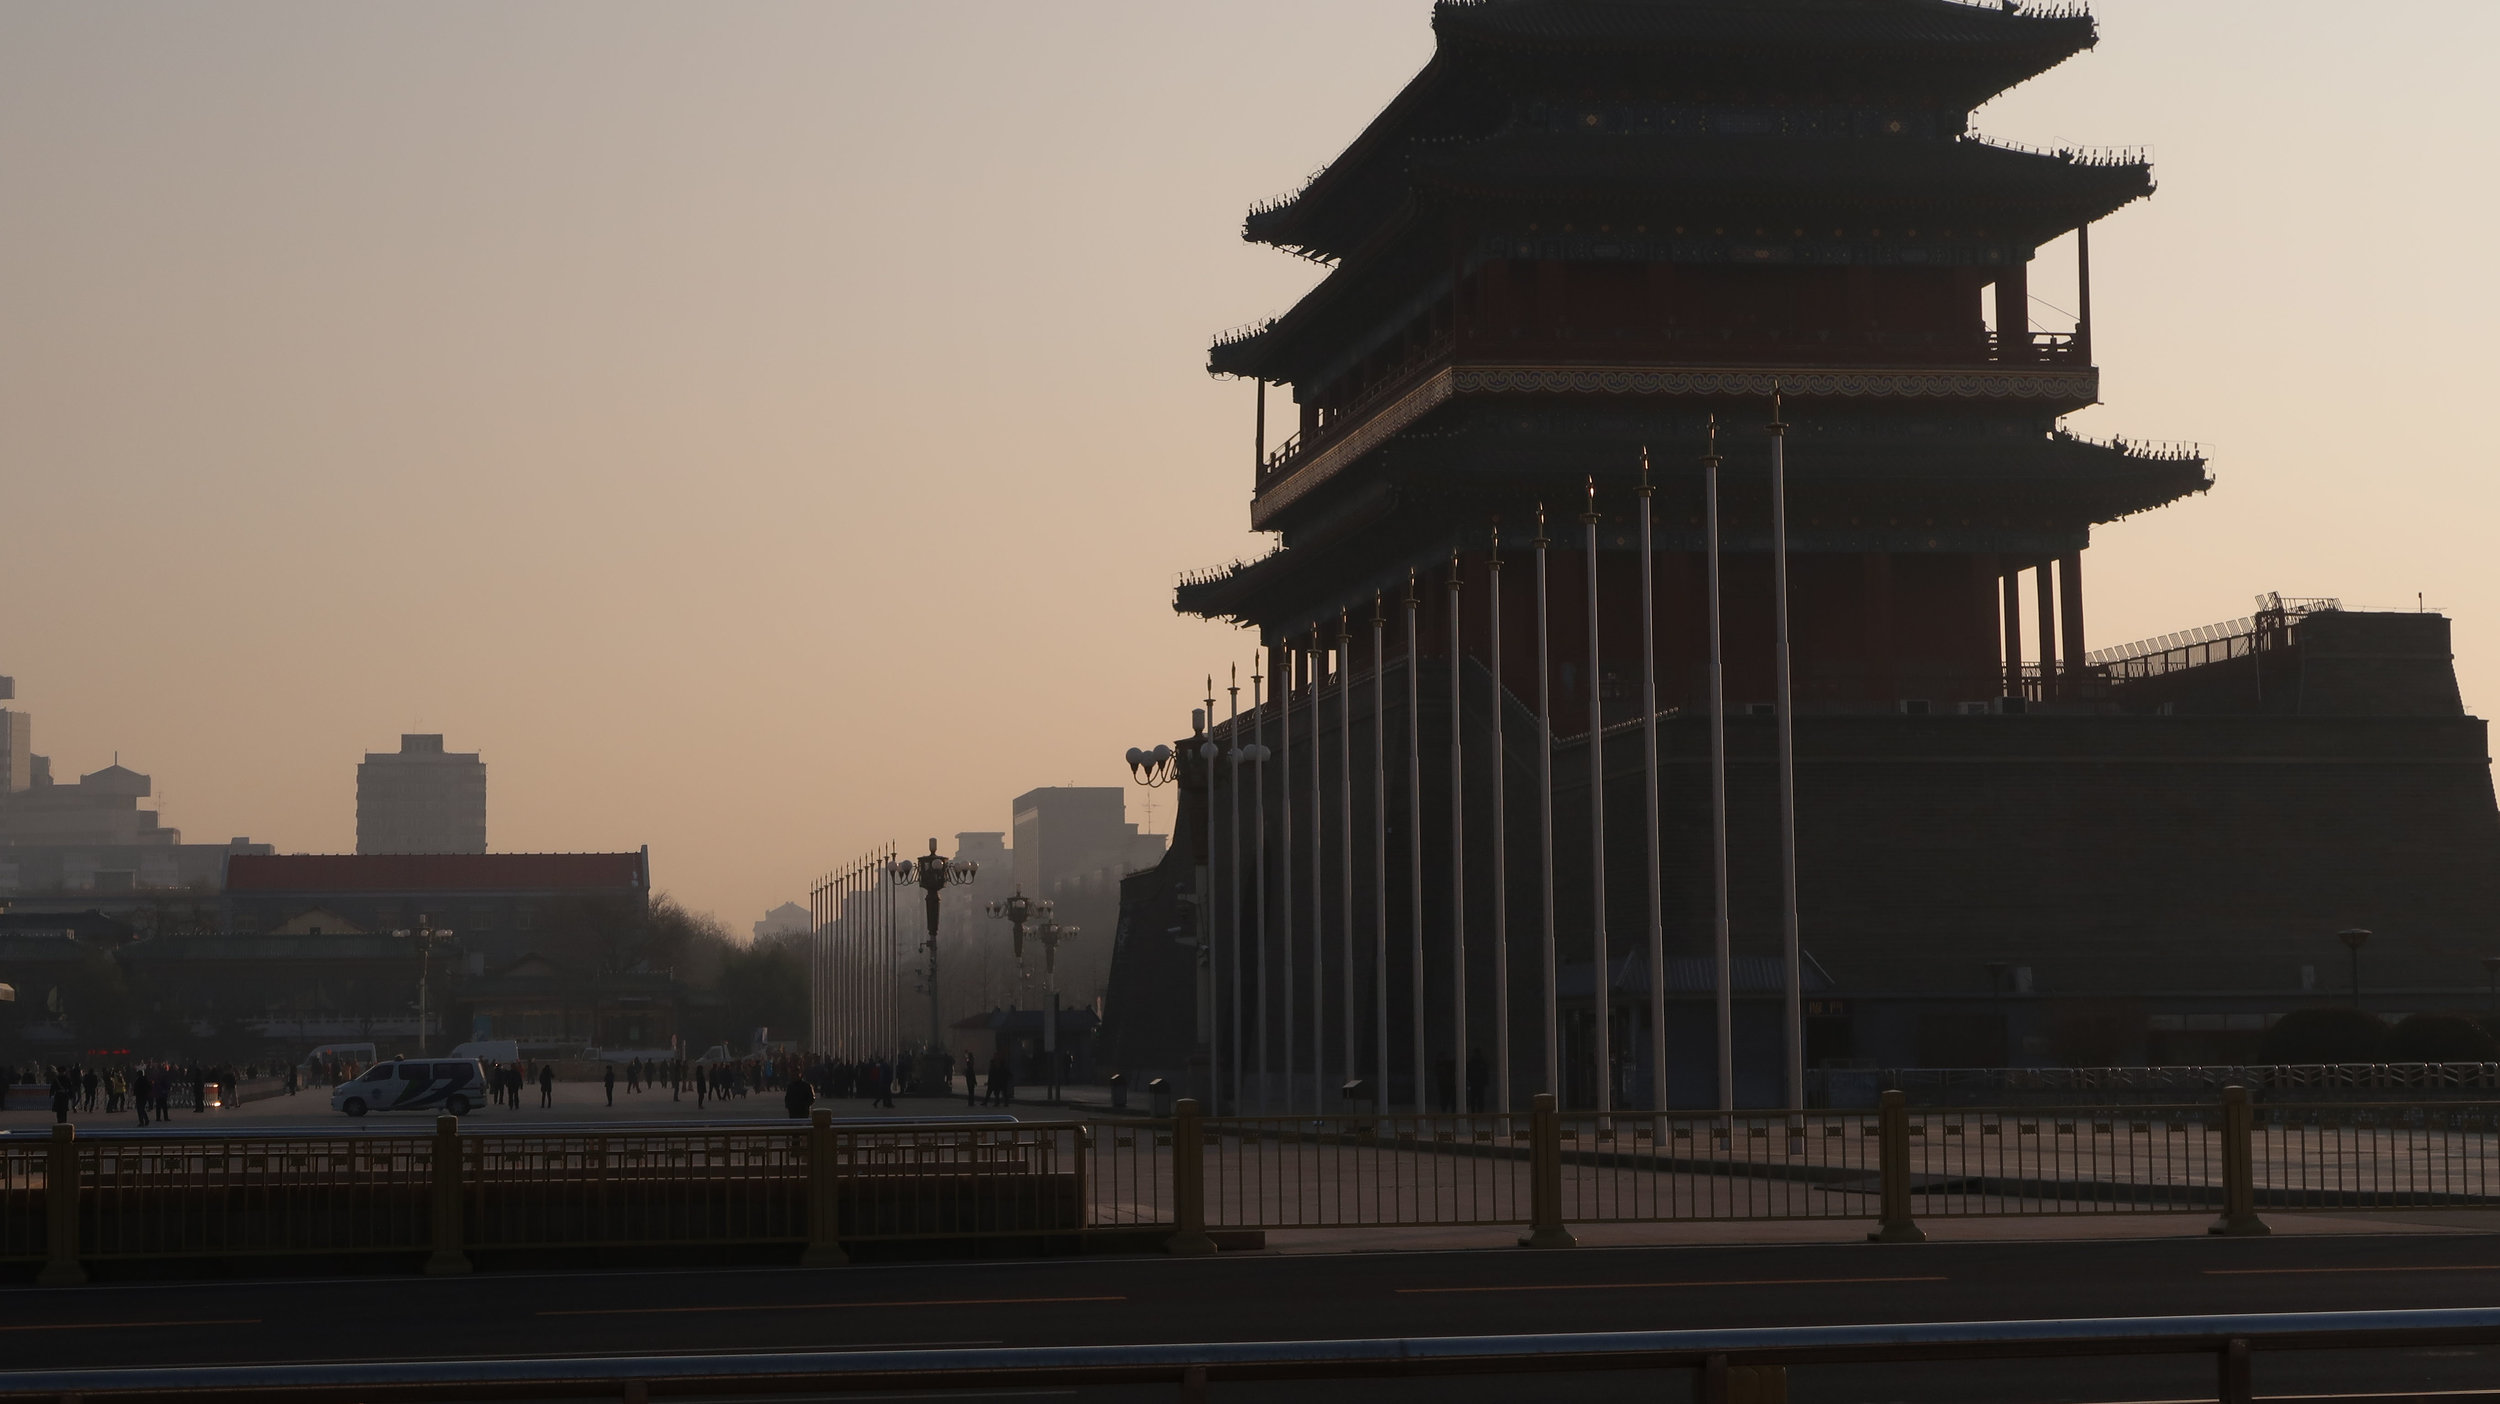 Beijing, China: Tiannemen Square